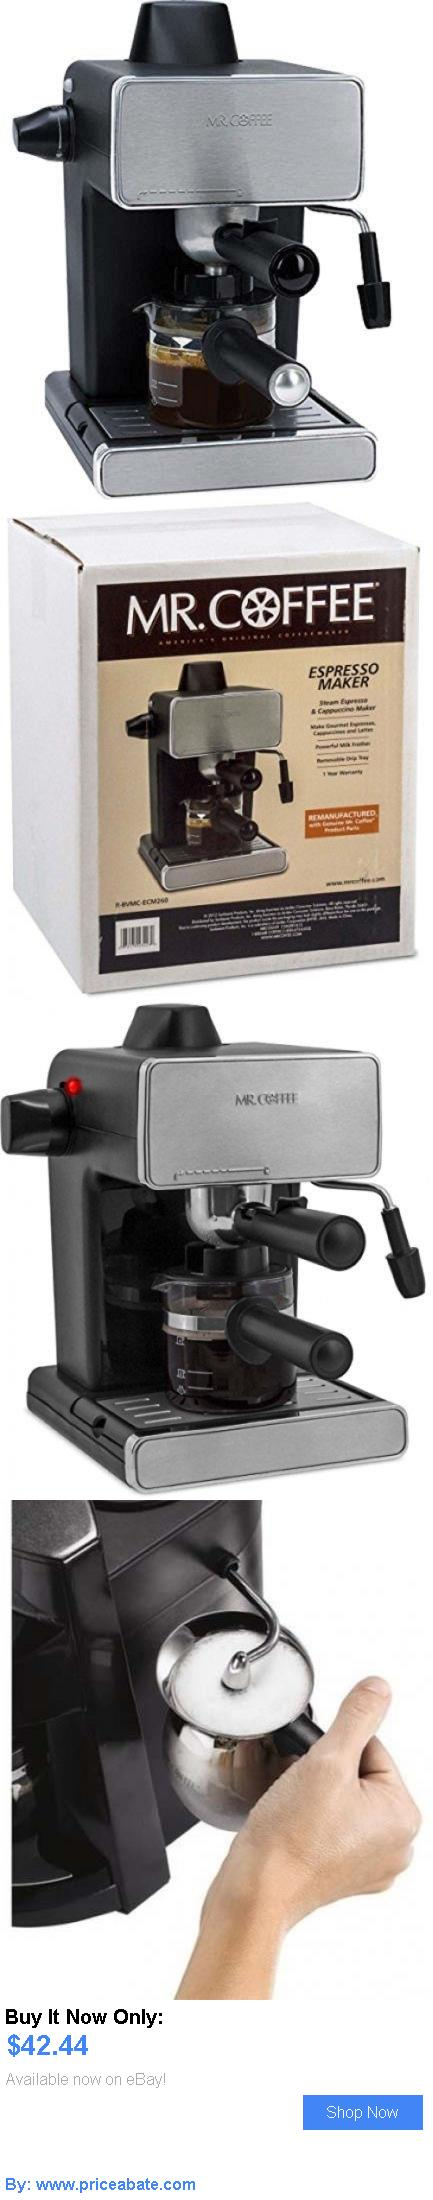 Uncategorized Where To Buy Small Kitchen Appliances small kitchen appliances mr coffee bvmc ecm260 steam espresso machine stainless steel